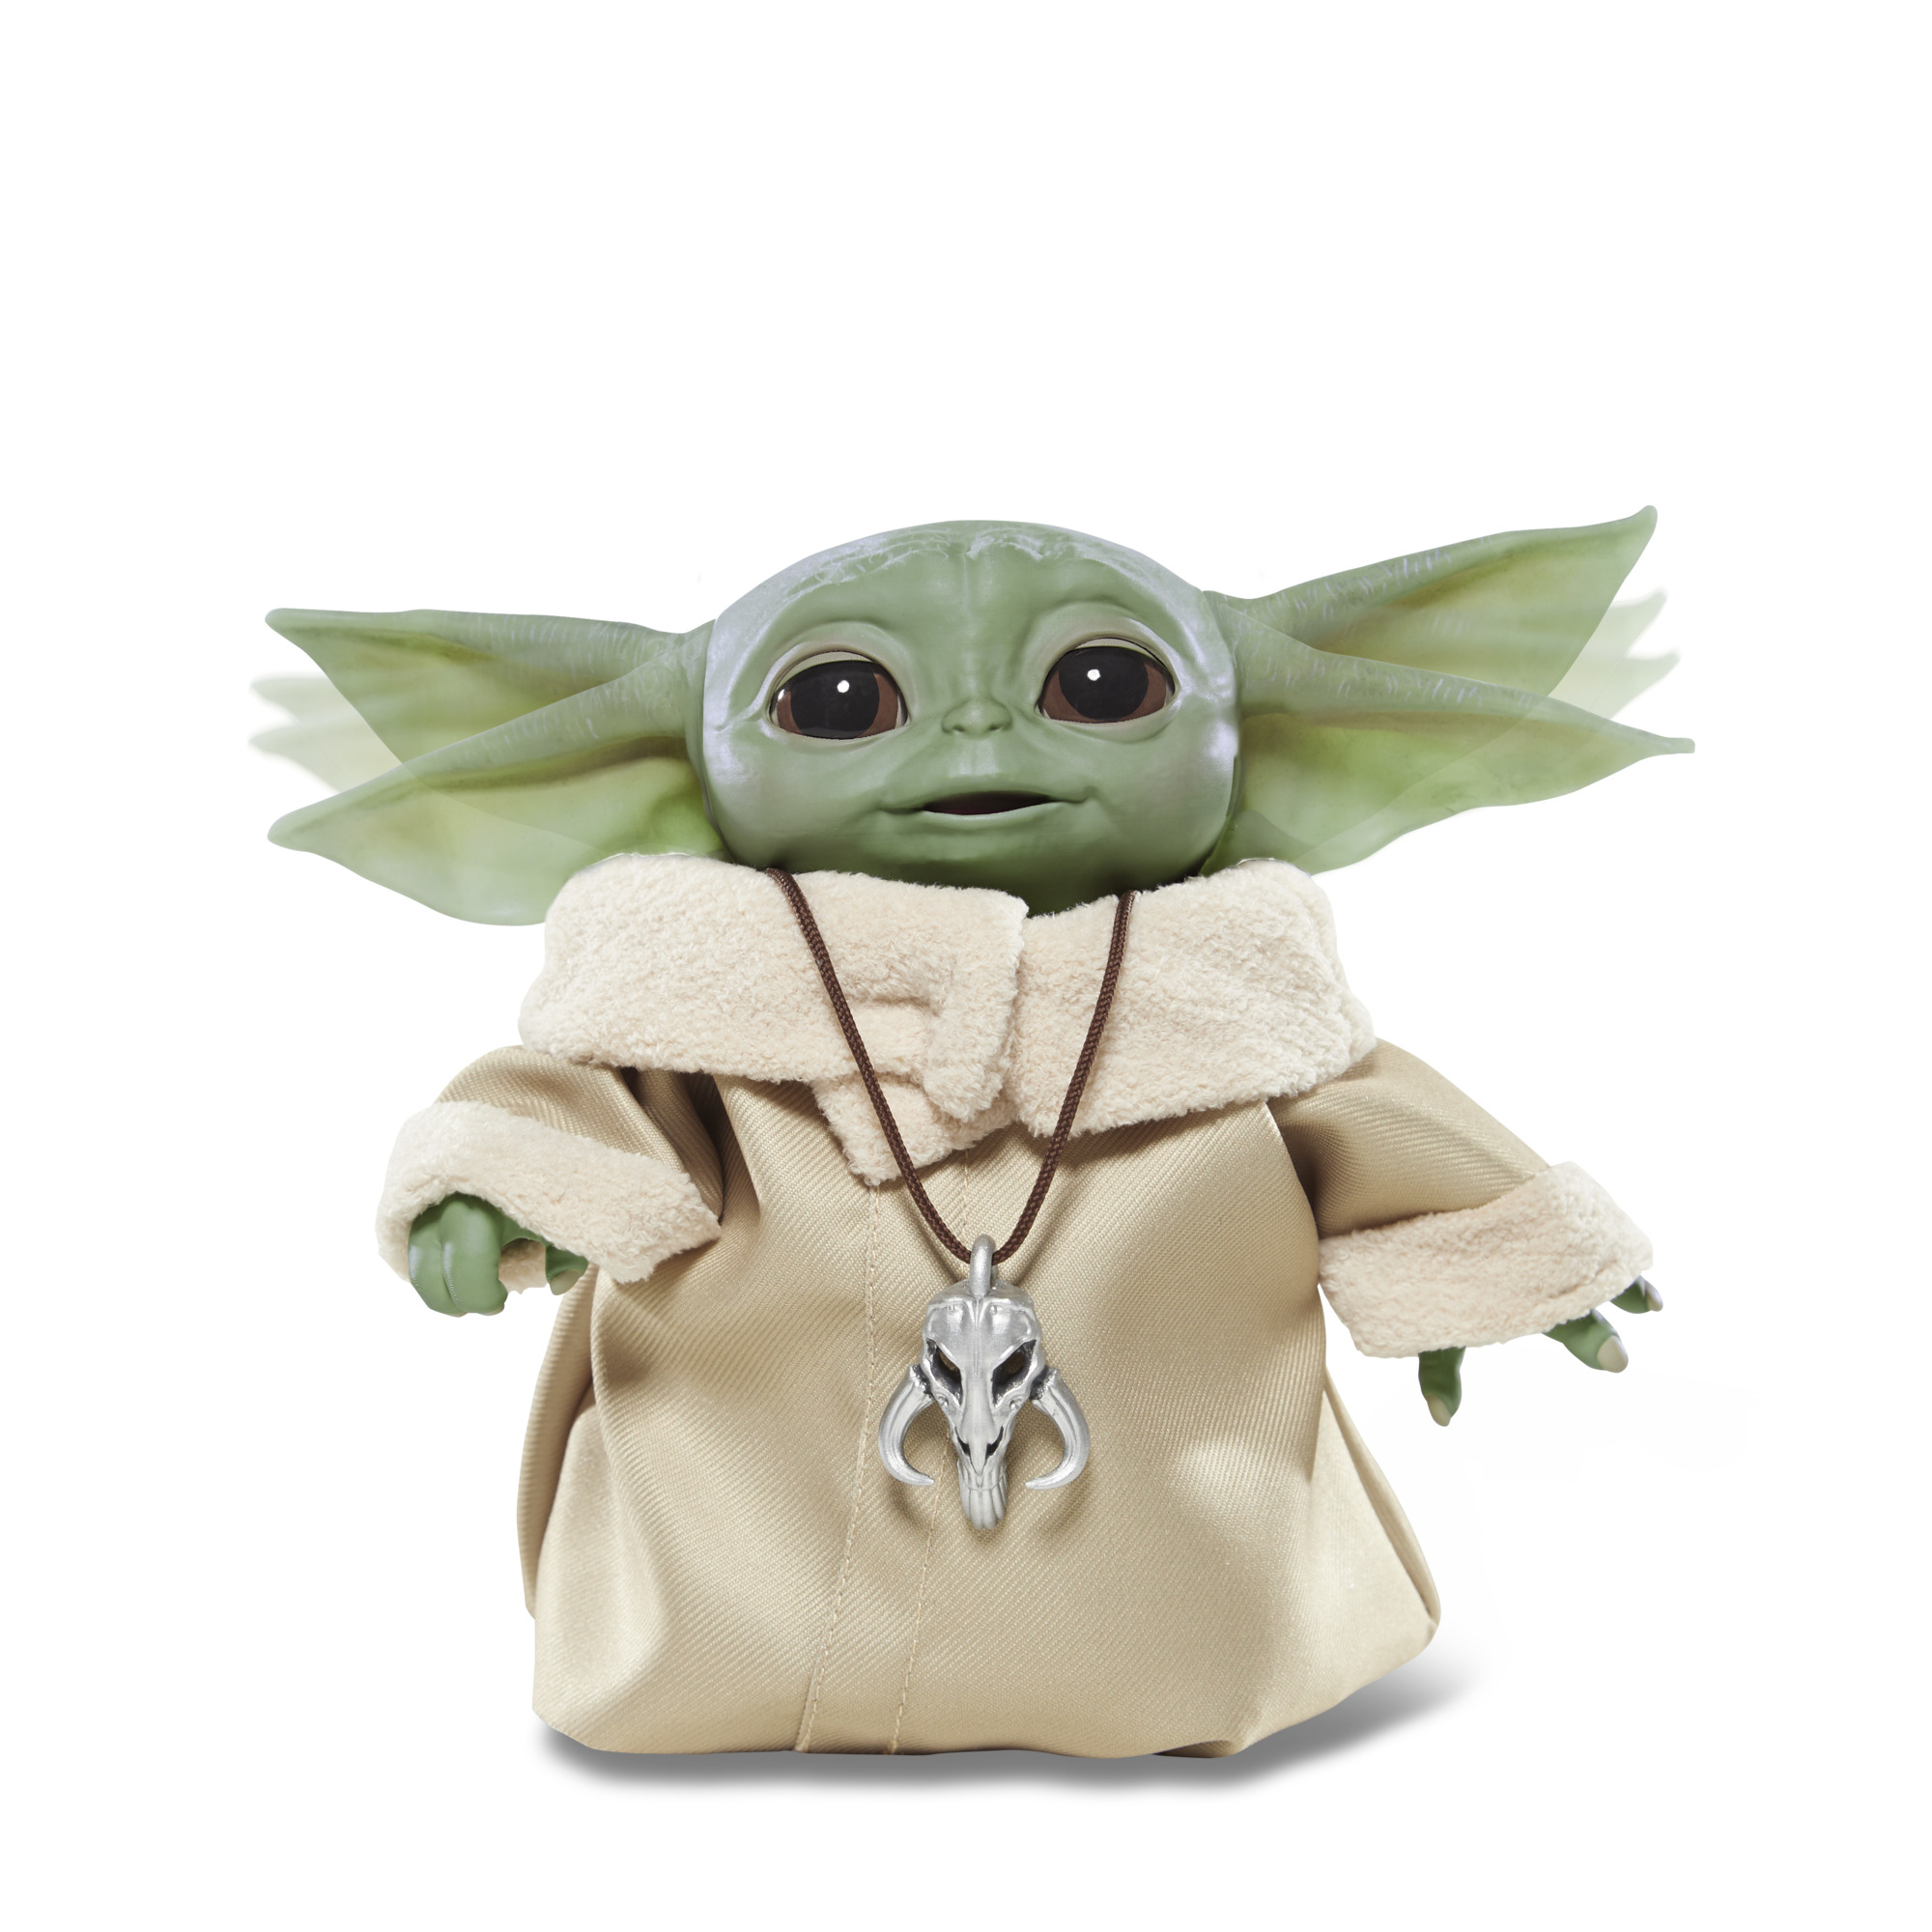 Hasbro's Baby Yoda animatronic toy looks, sounds, and moves like the real thing 13